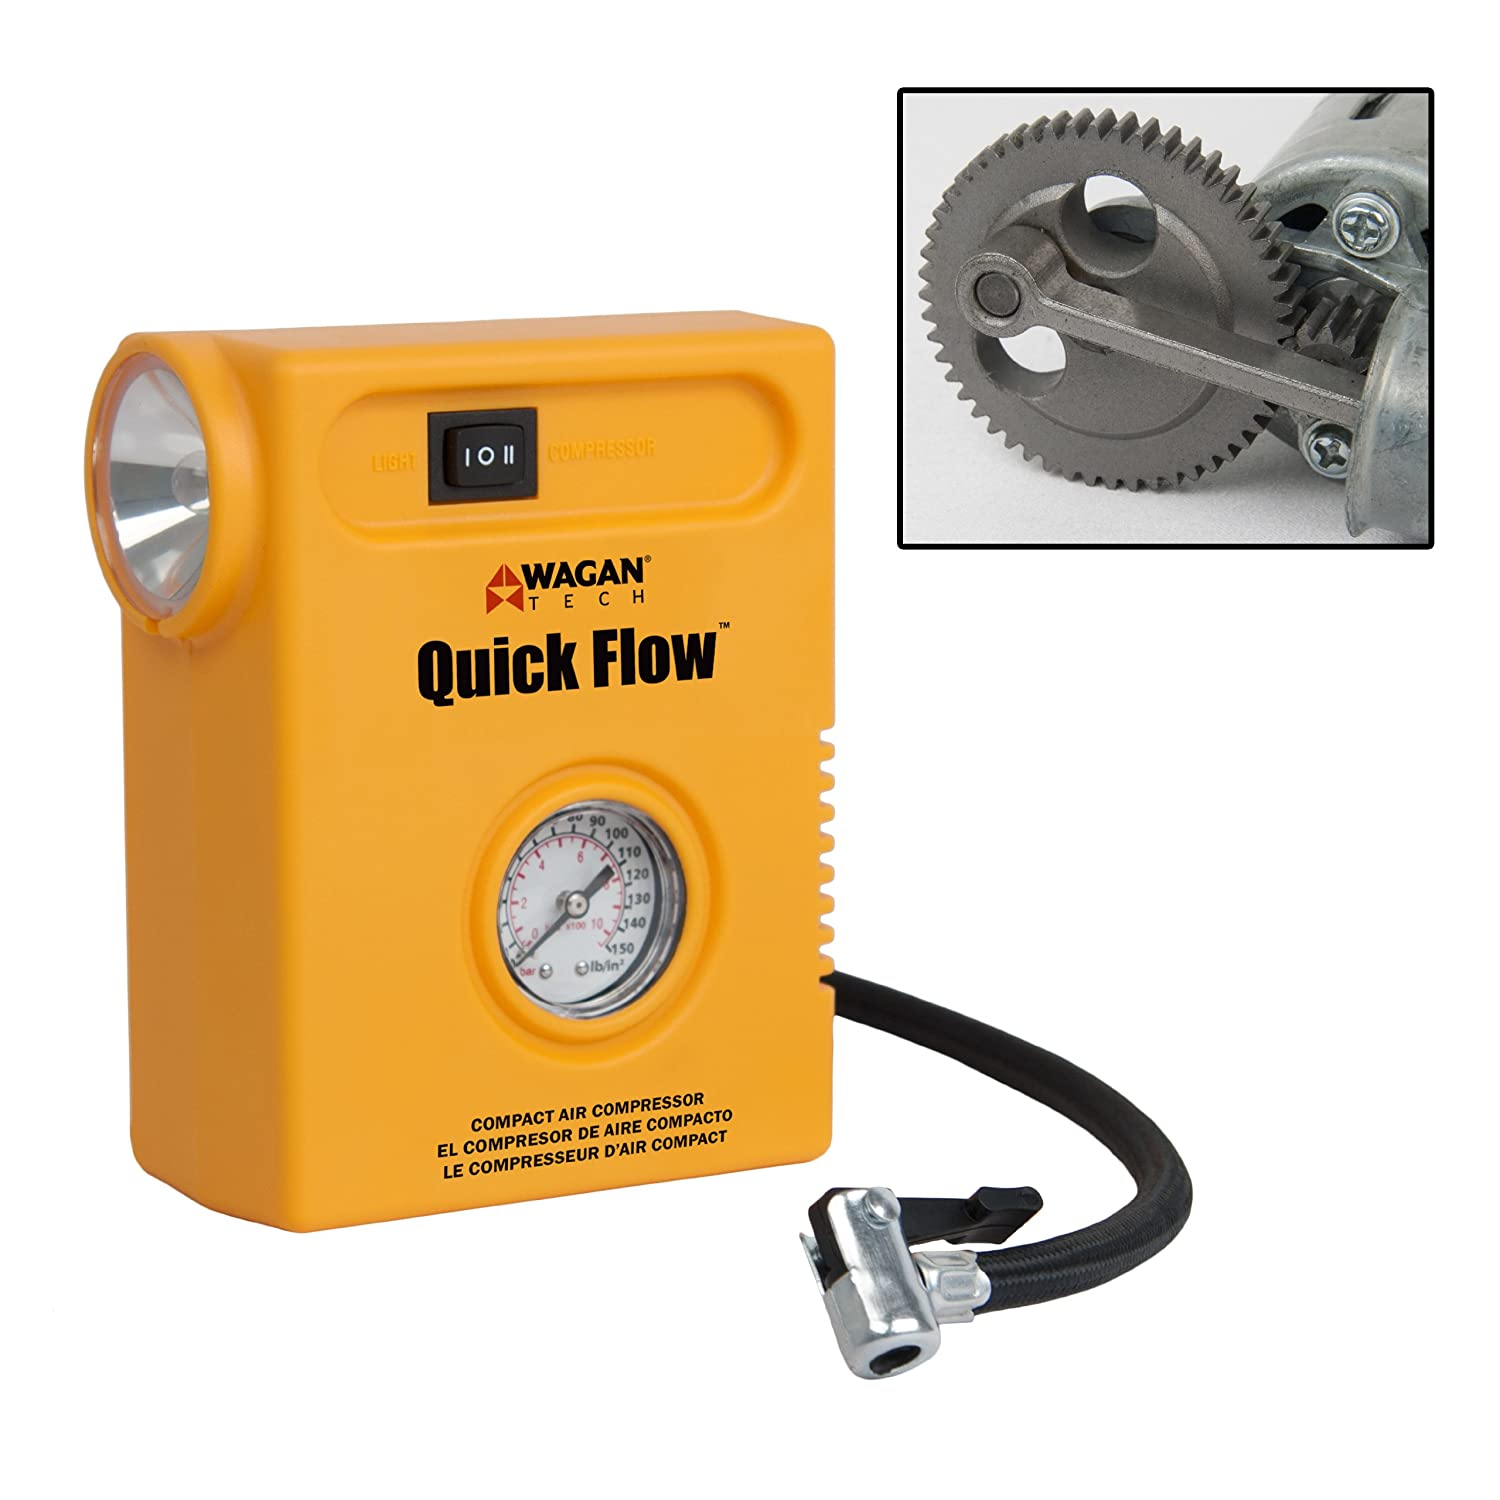 Amazon.com : Quick Flow Wagan Tech Compact Air Compressor : Garden & Outdoor